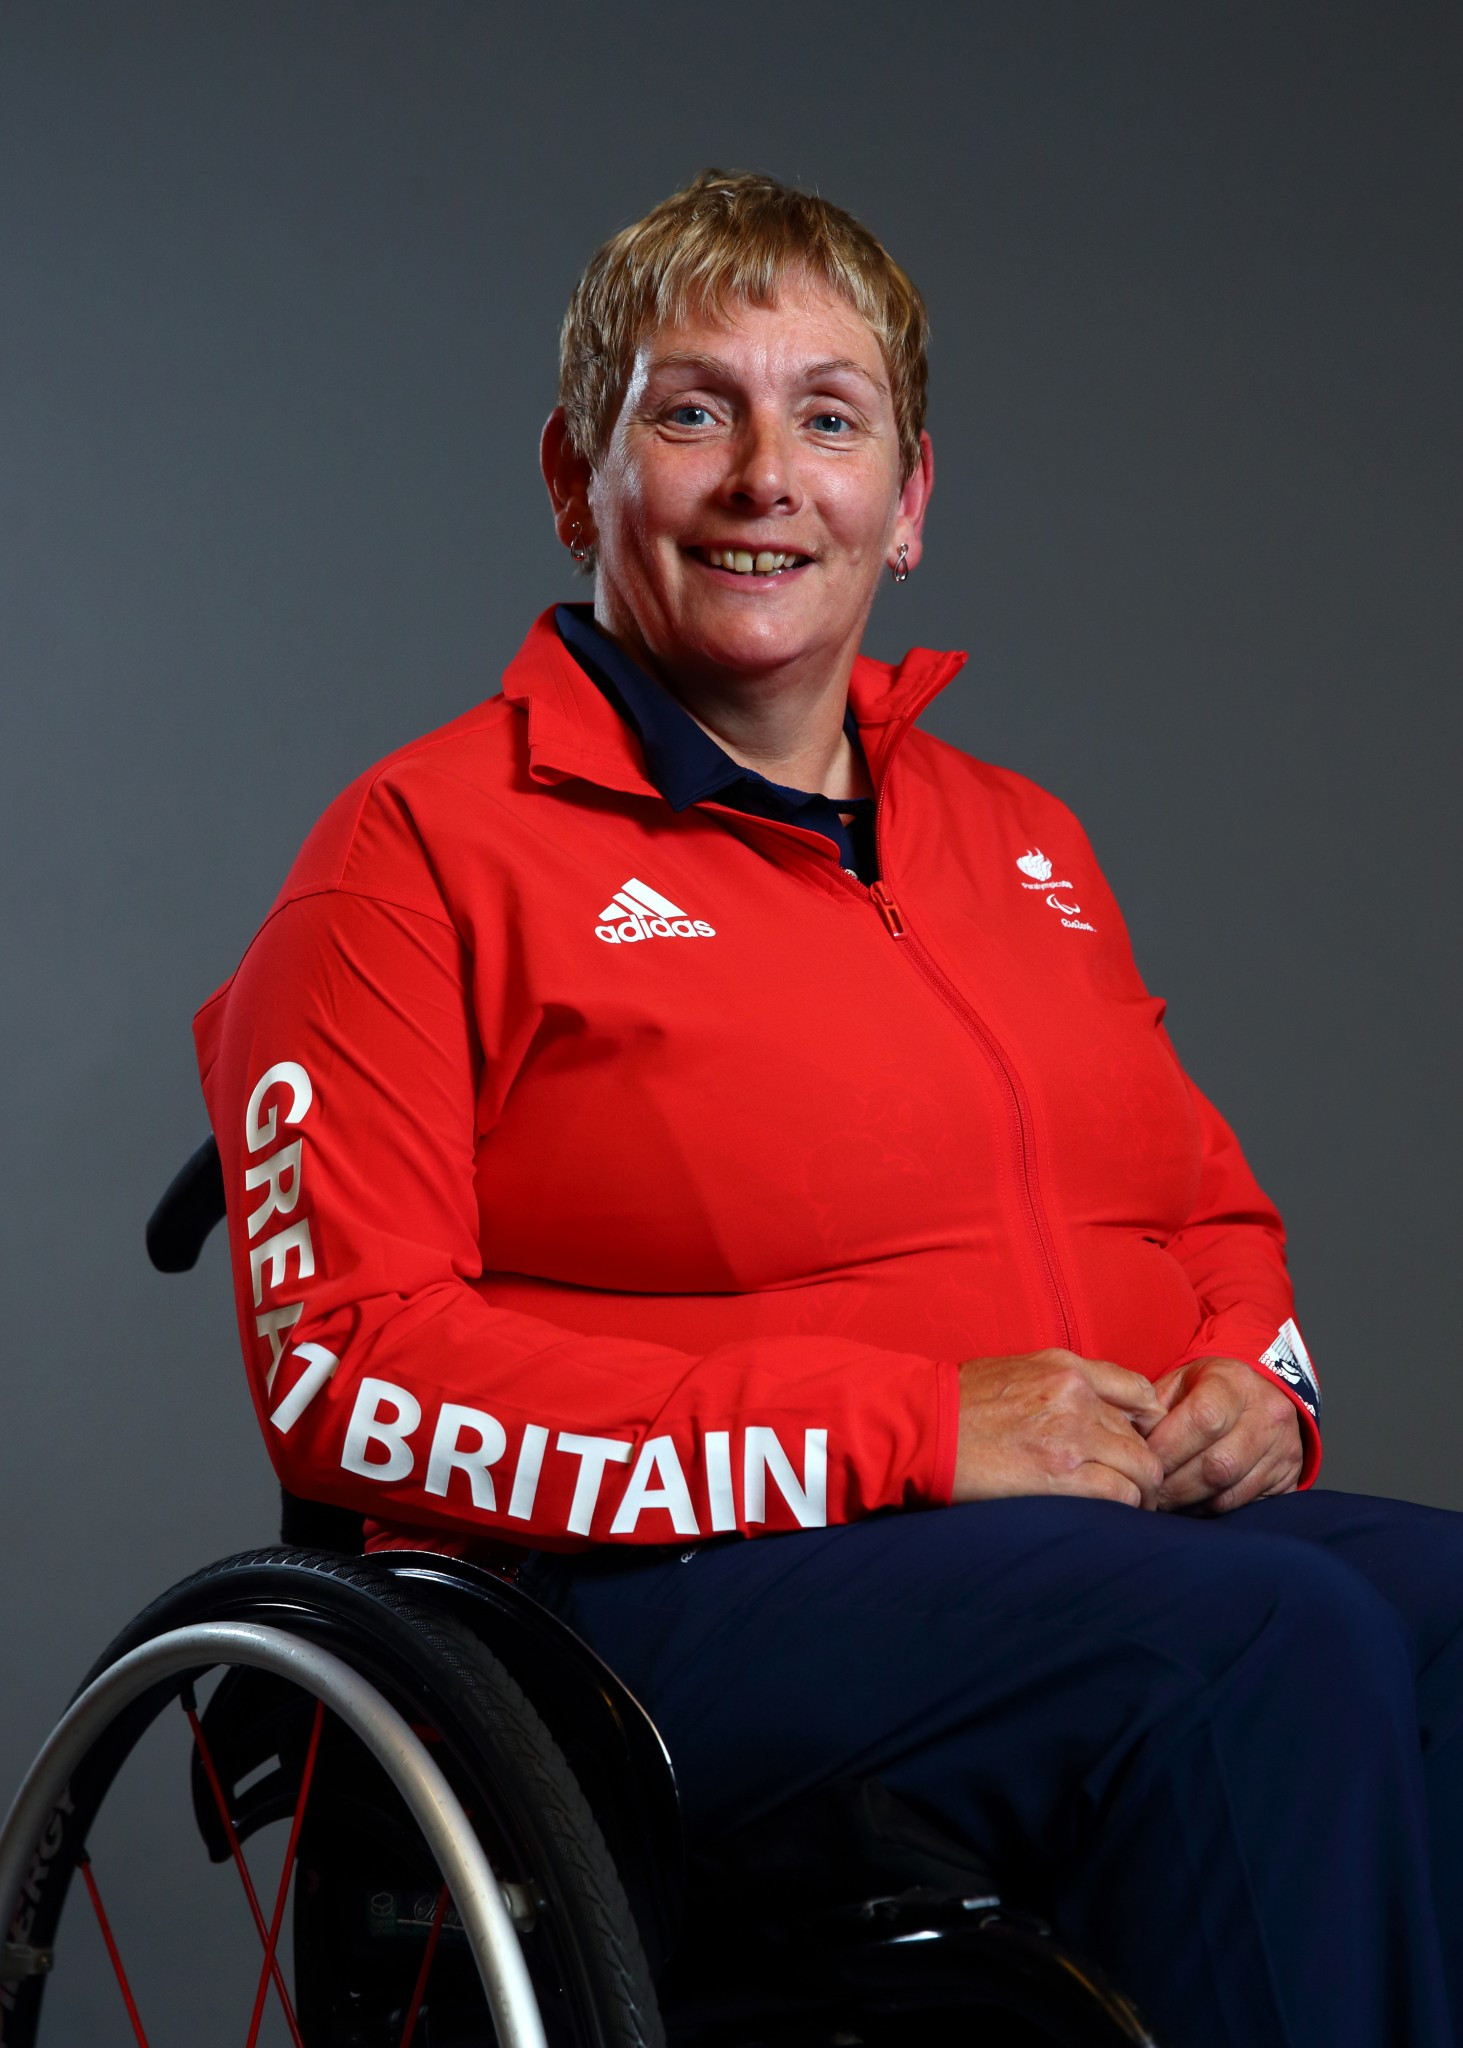 Jo Frith is one of three British gold medallists from the 2016 Paralympics selected for next month's World Para Archery Championships ©Getty Images